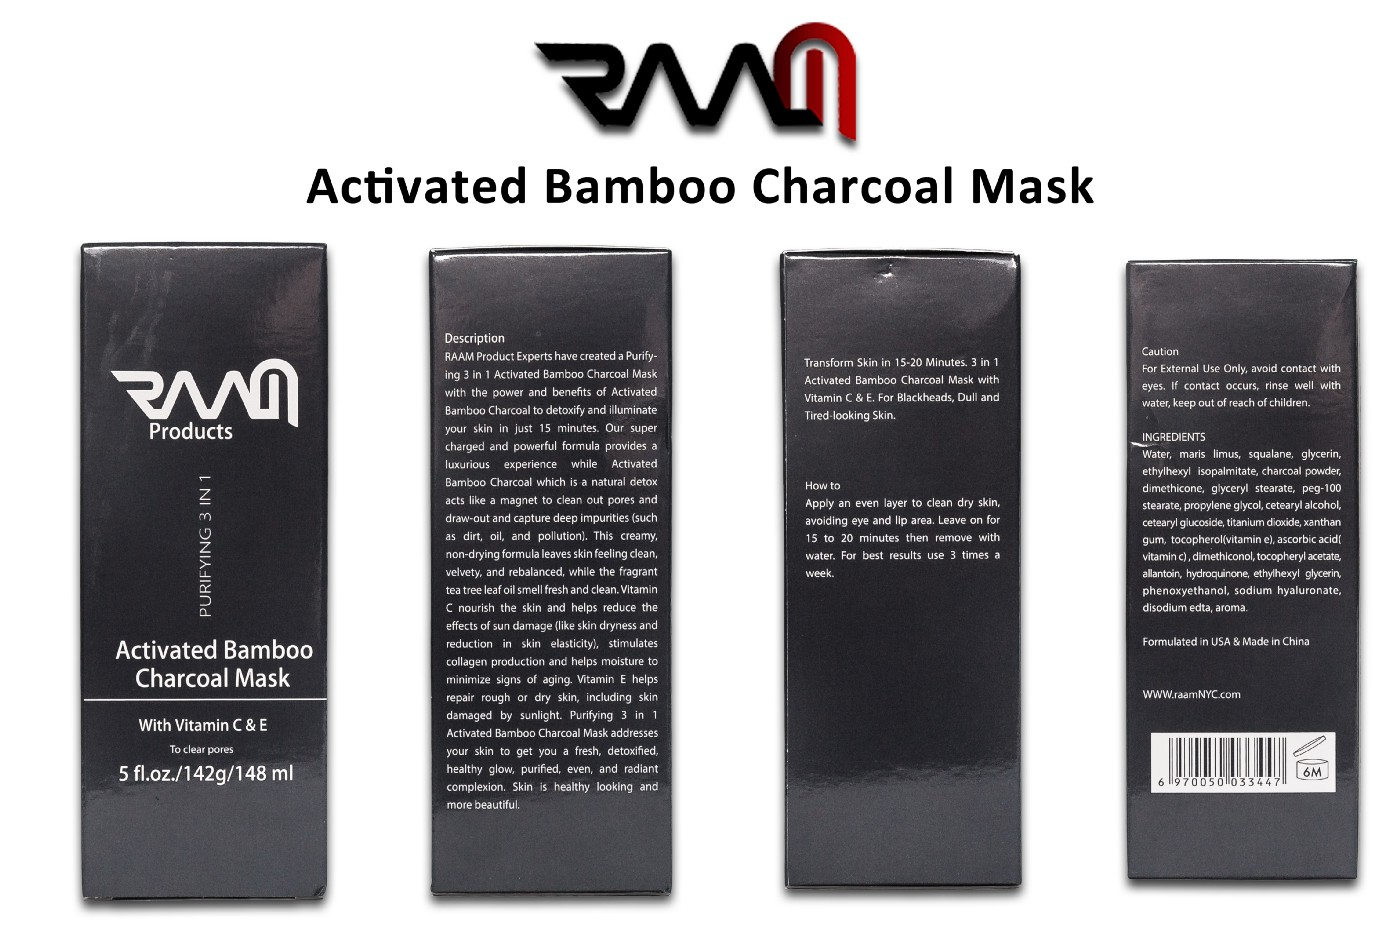 Experience clear improvement of your Face with Activated Bamboo